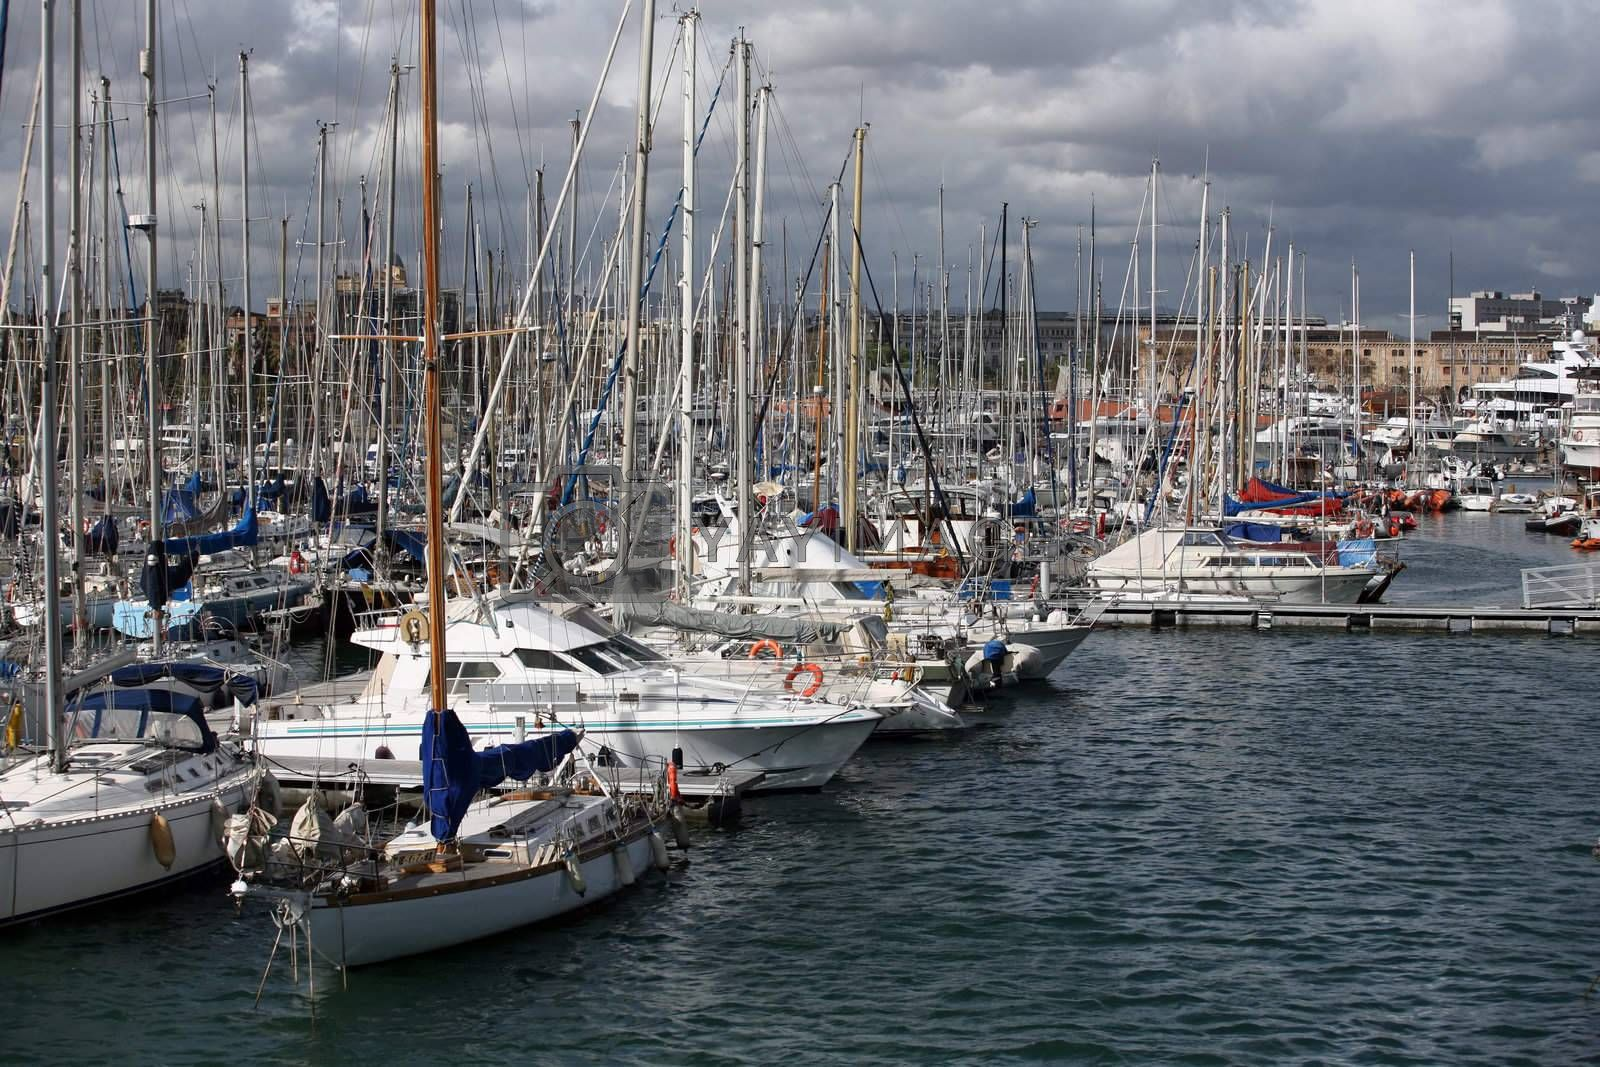 Tall luxury boats and yachts moored in duquesa Port In Spain, Barcelona